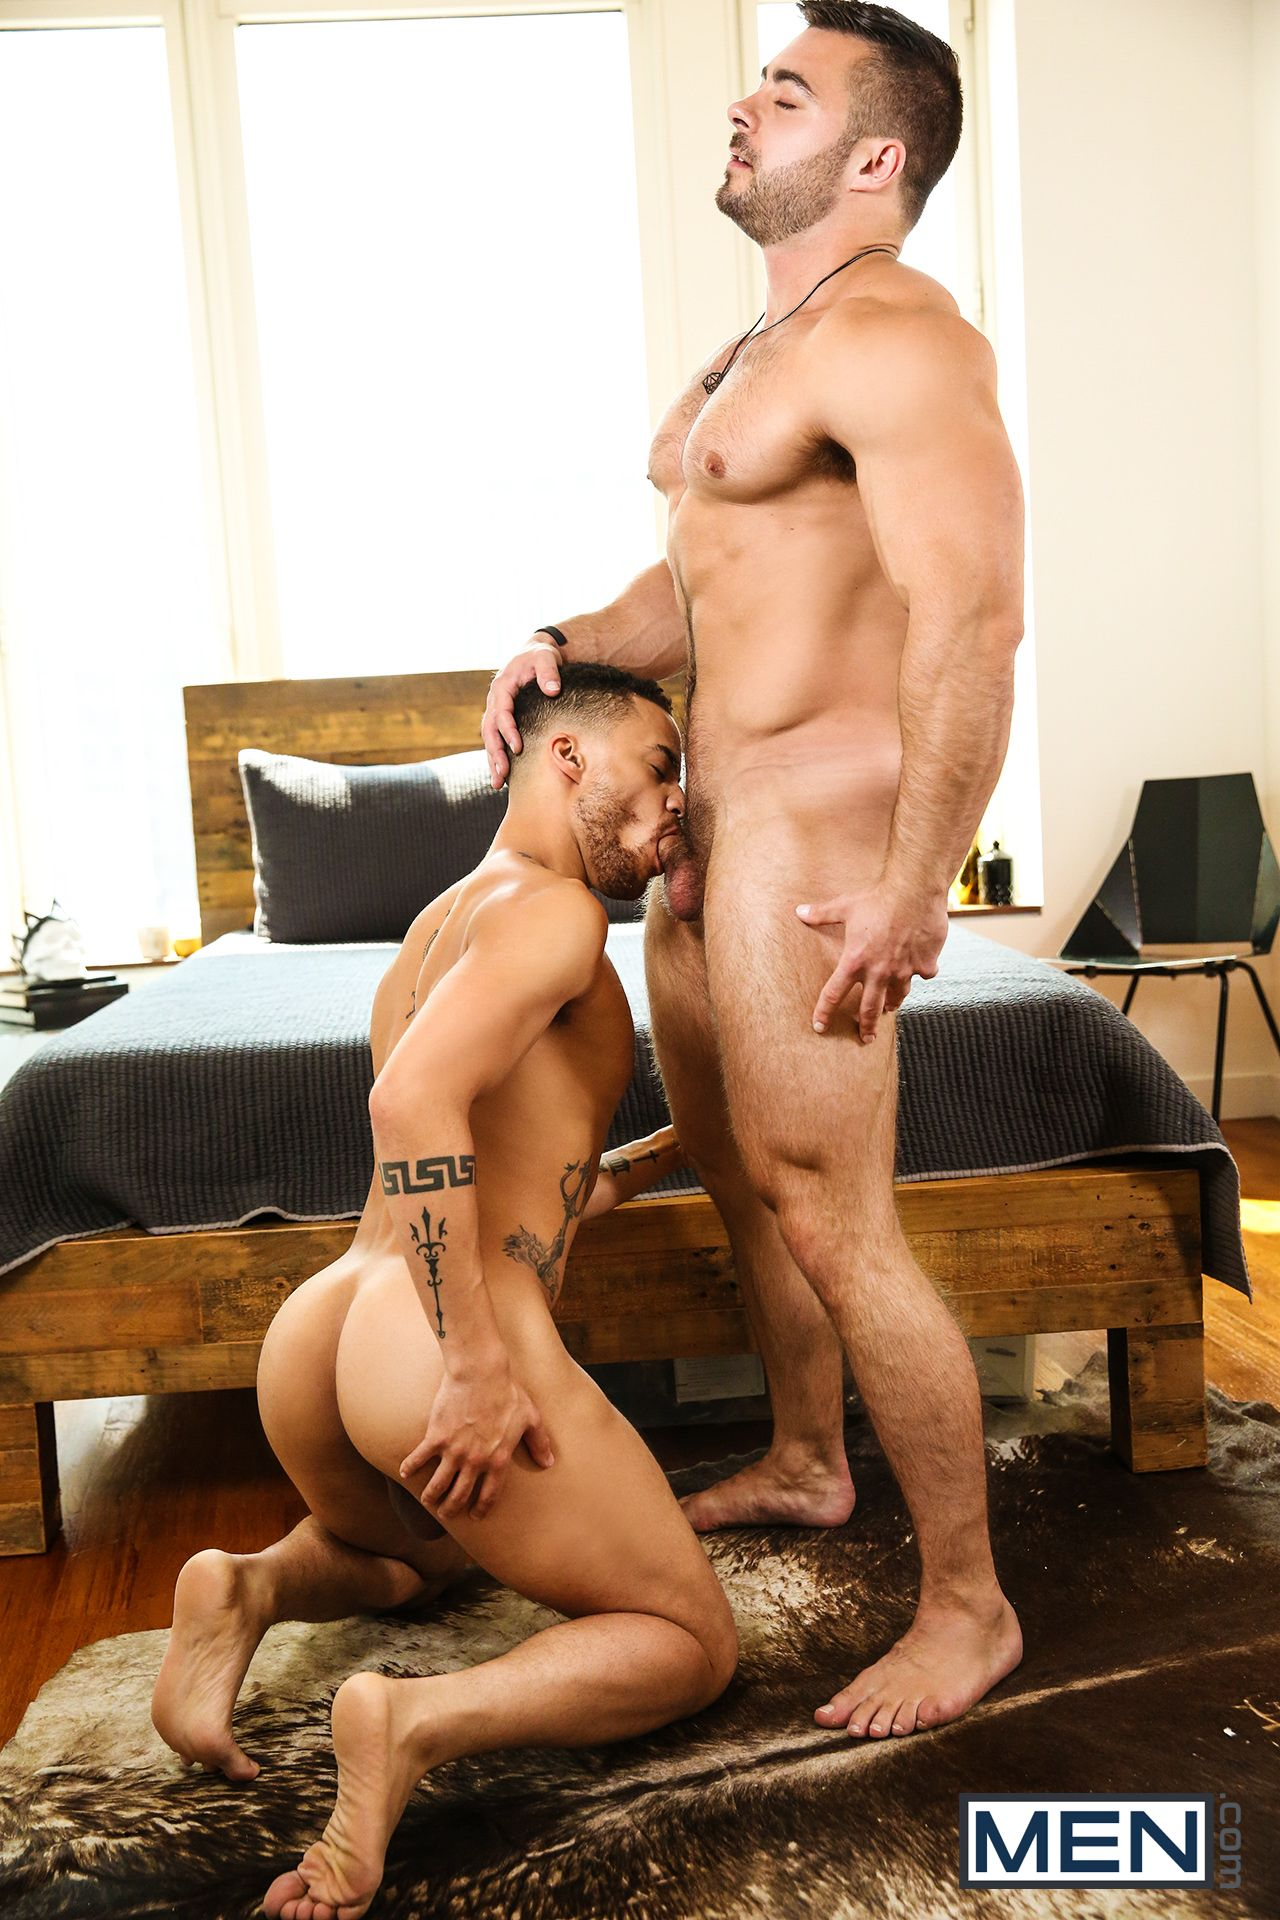 Check out this str8 muscular stud shoot that cum!